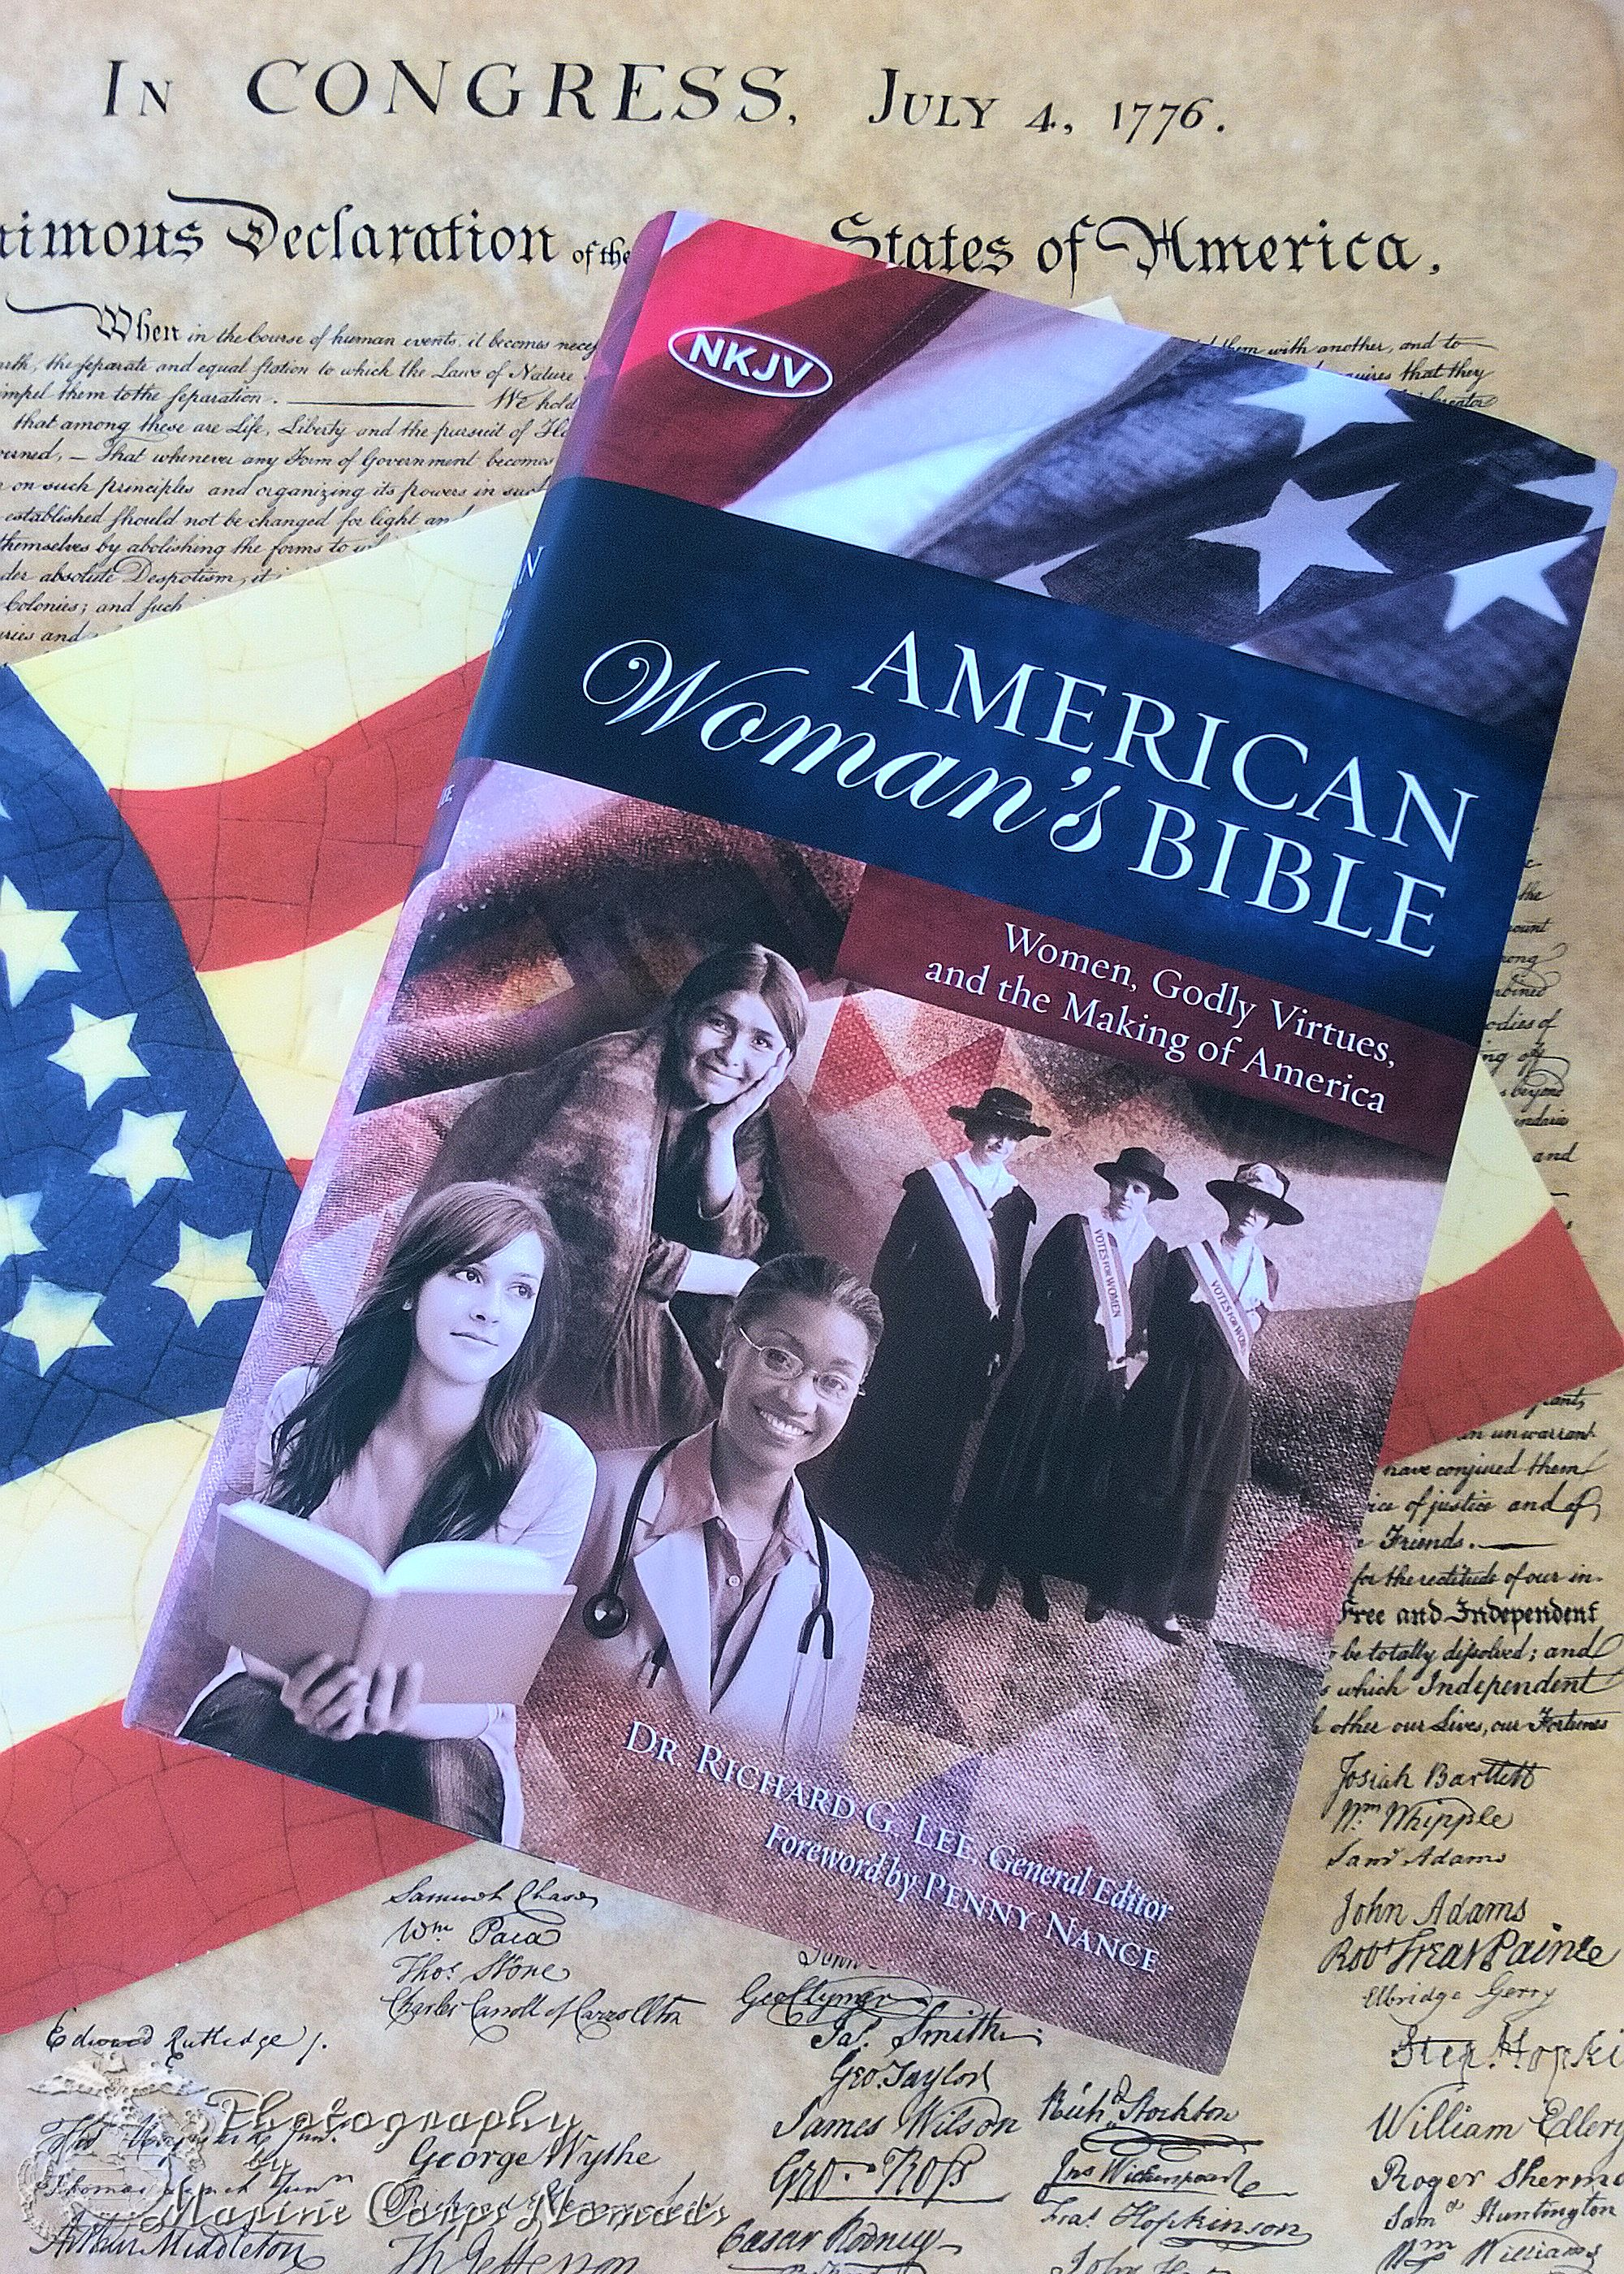 American Women's Bible: Women, Godly Virtues, and the Making of America